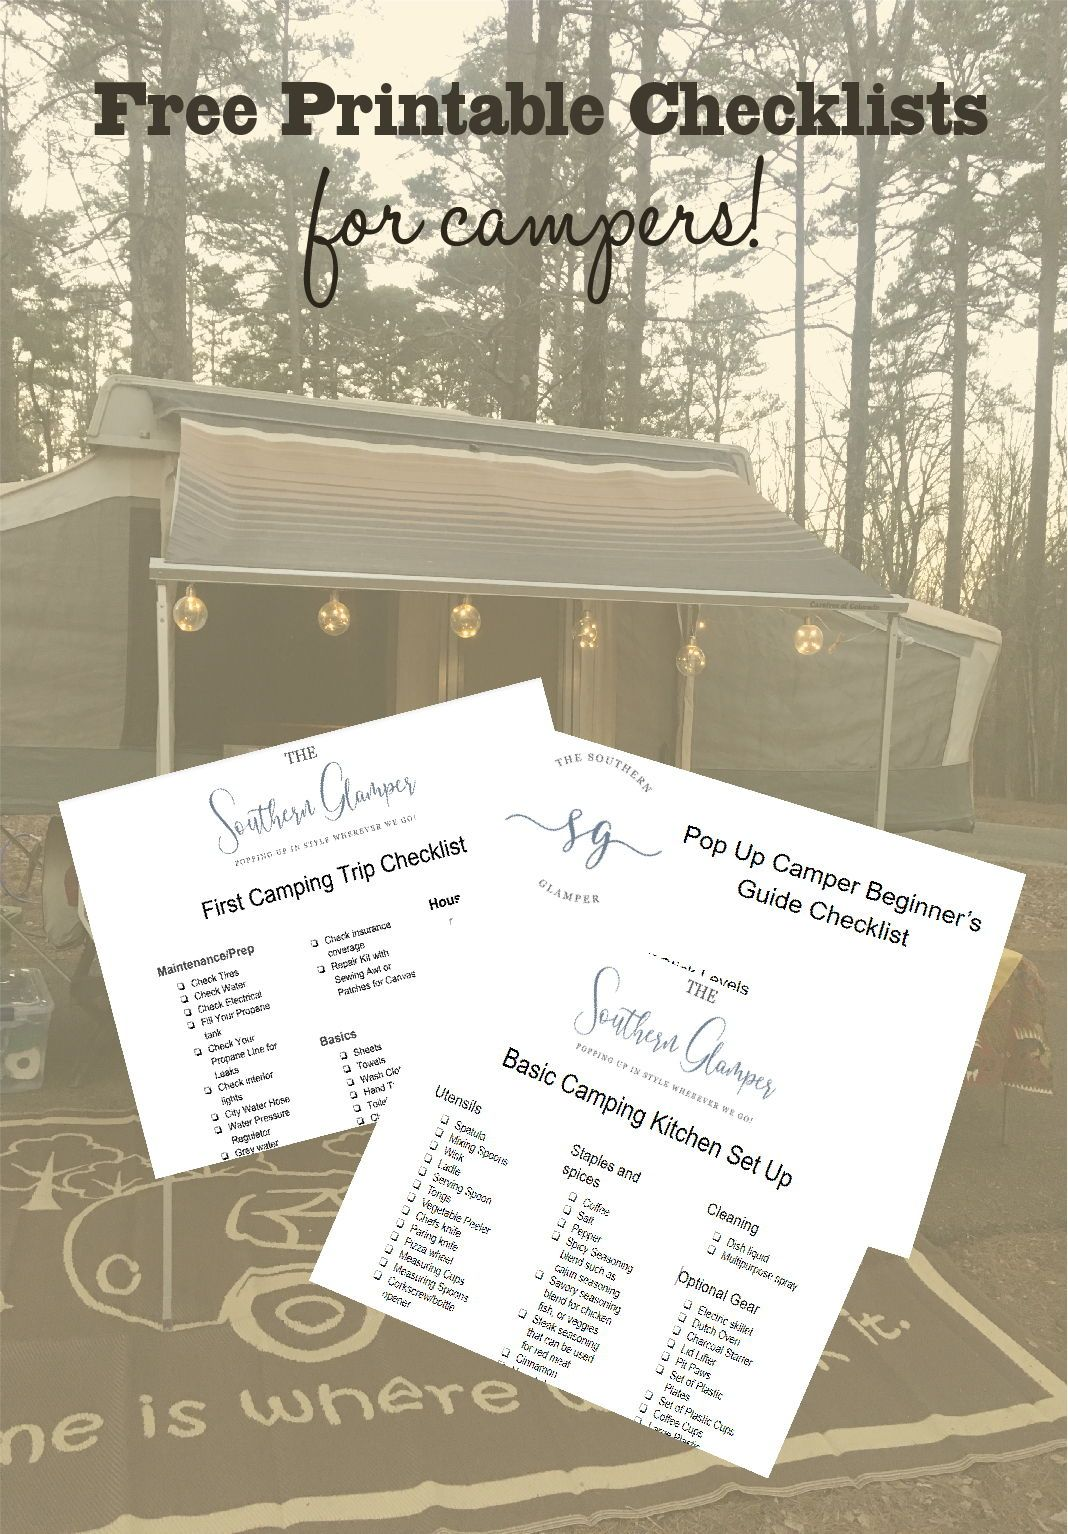 3 Basic Printable Checklists That You Can Use To Plan And Organize Your Camper Camping Checklist Camping Trip Checklist Camper Checklist